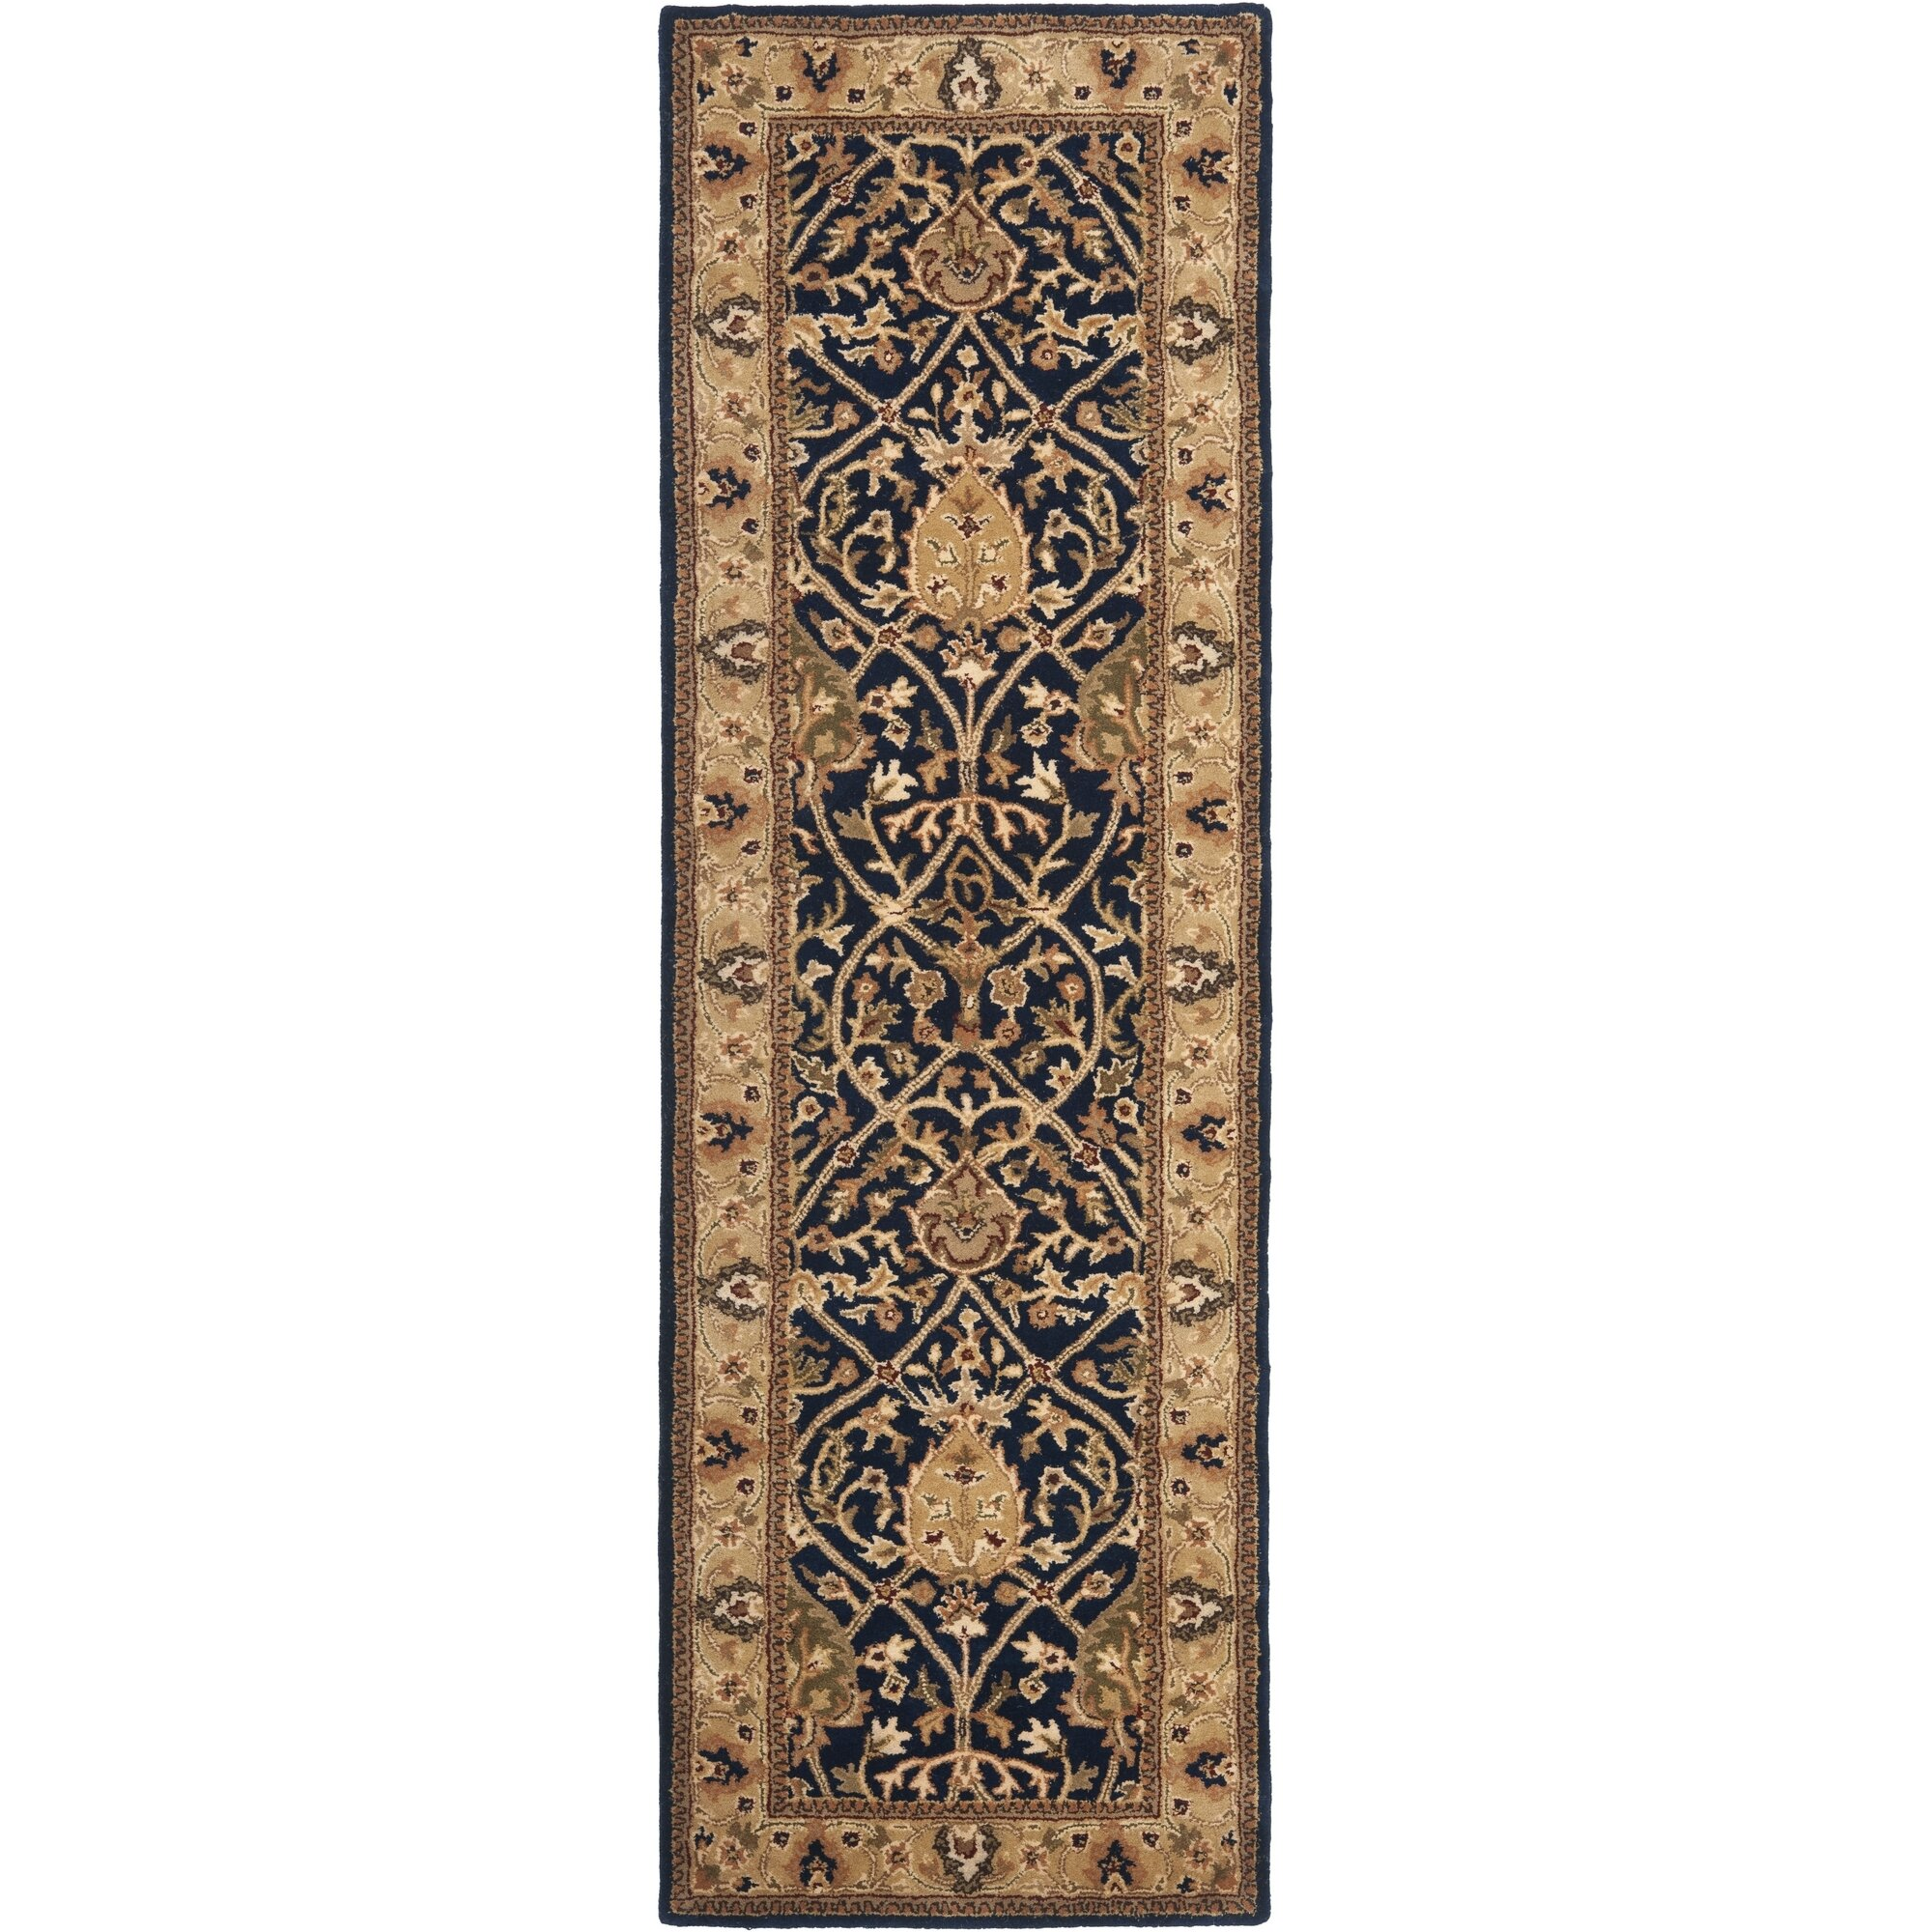 d cor rugs runner area rugs safavieh sku fv23877